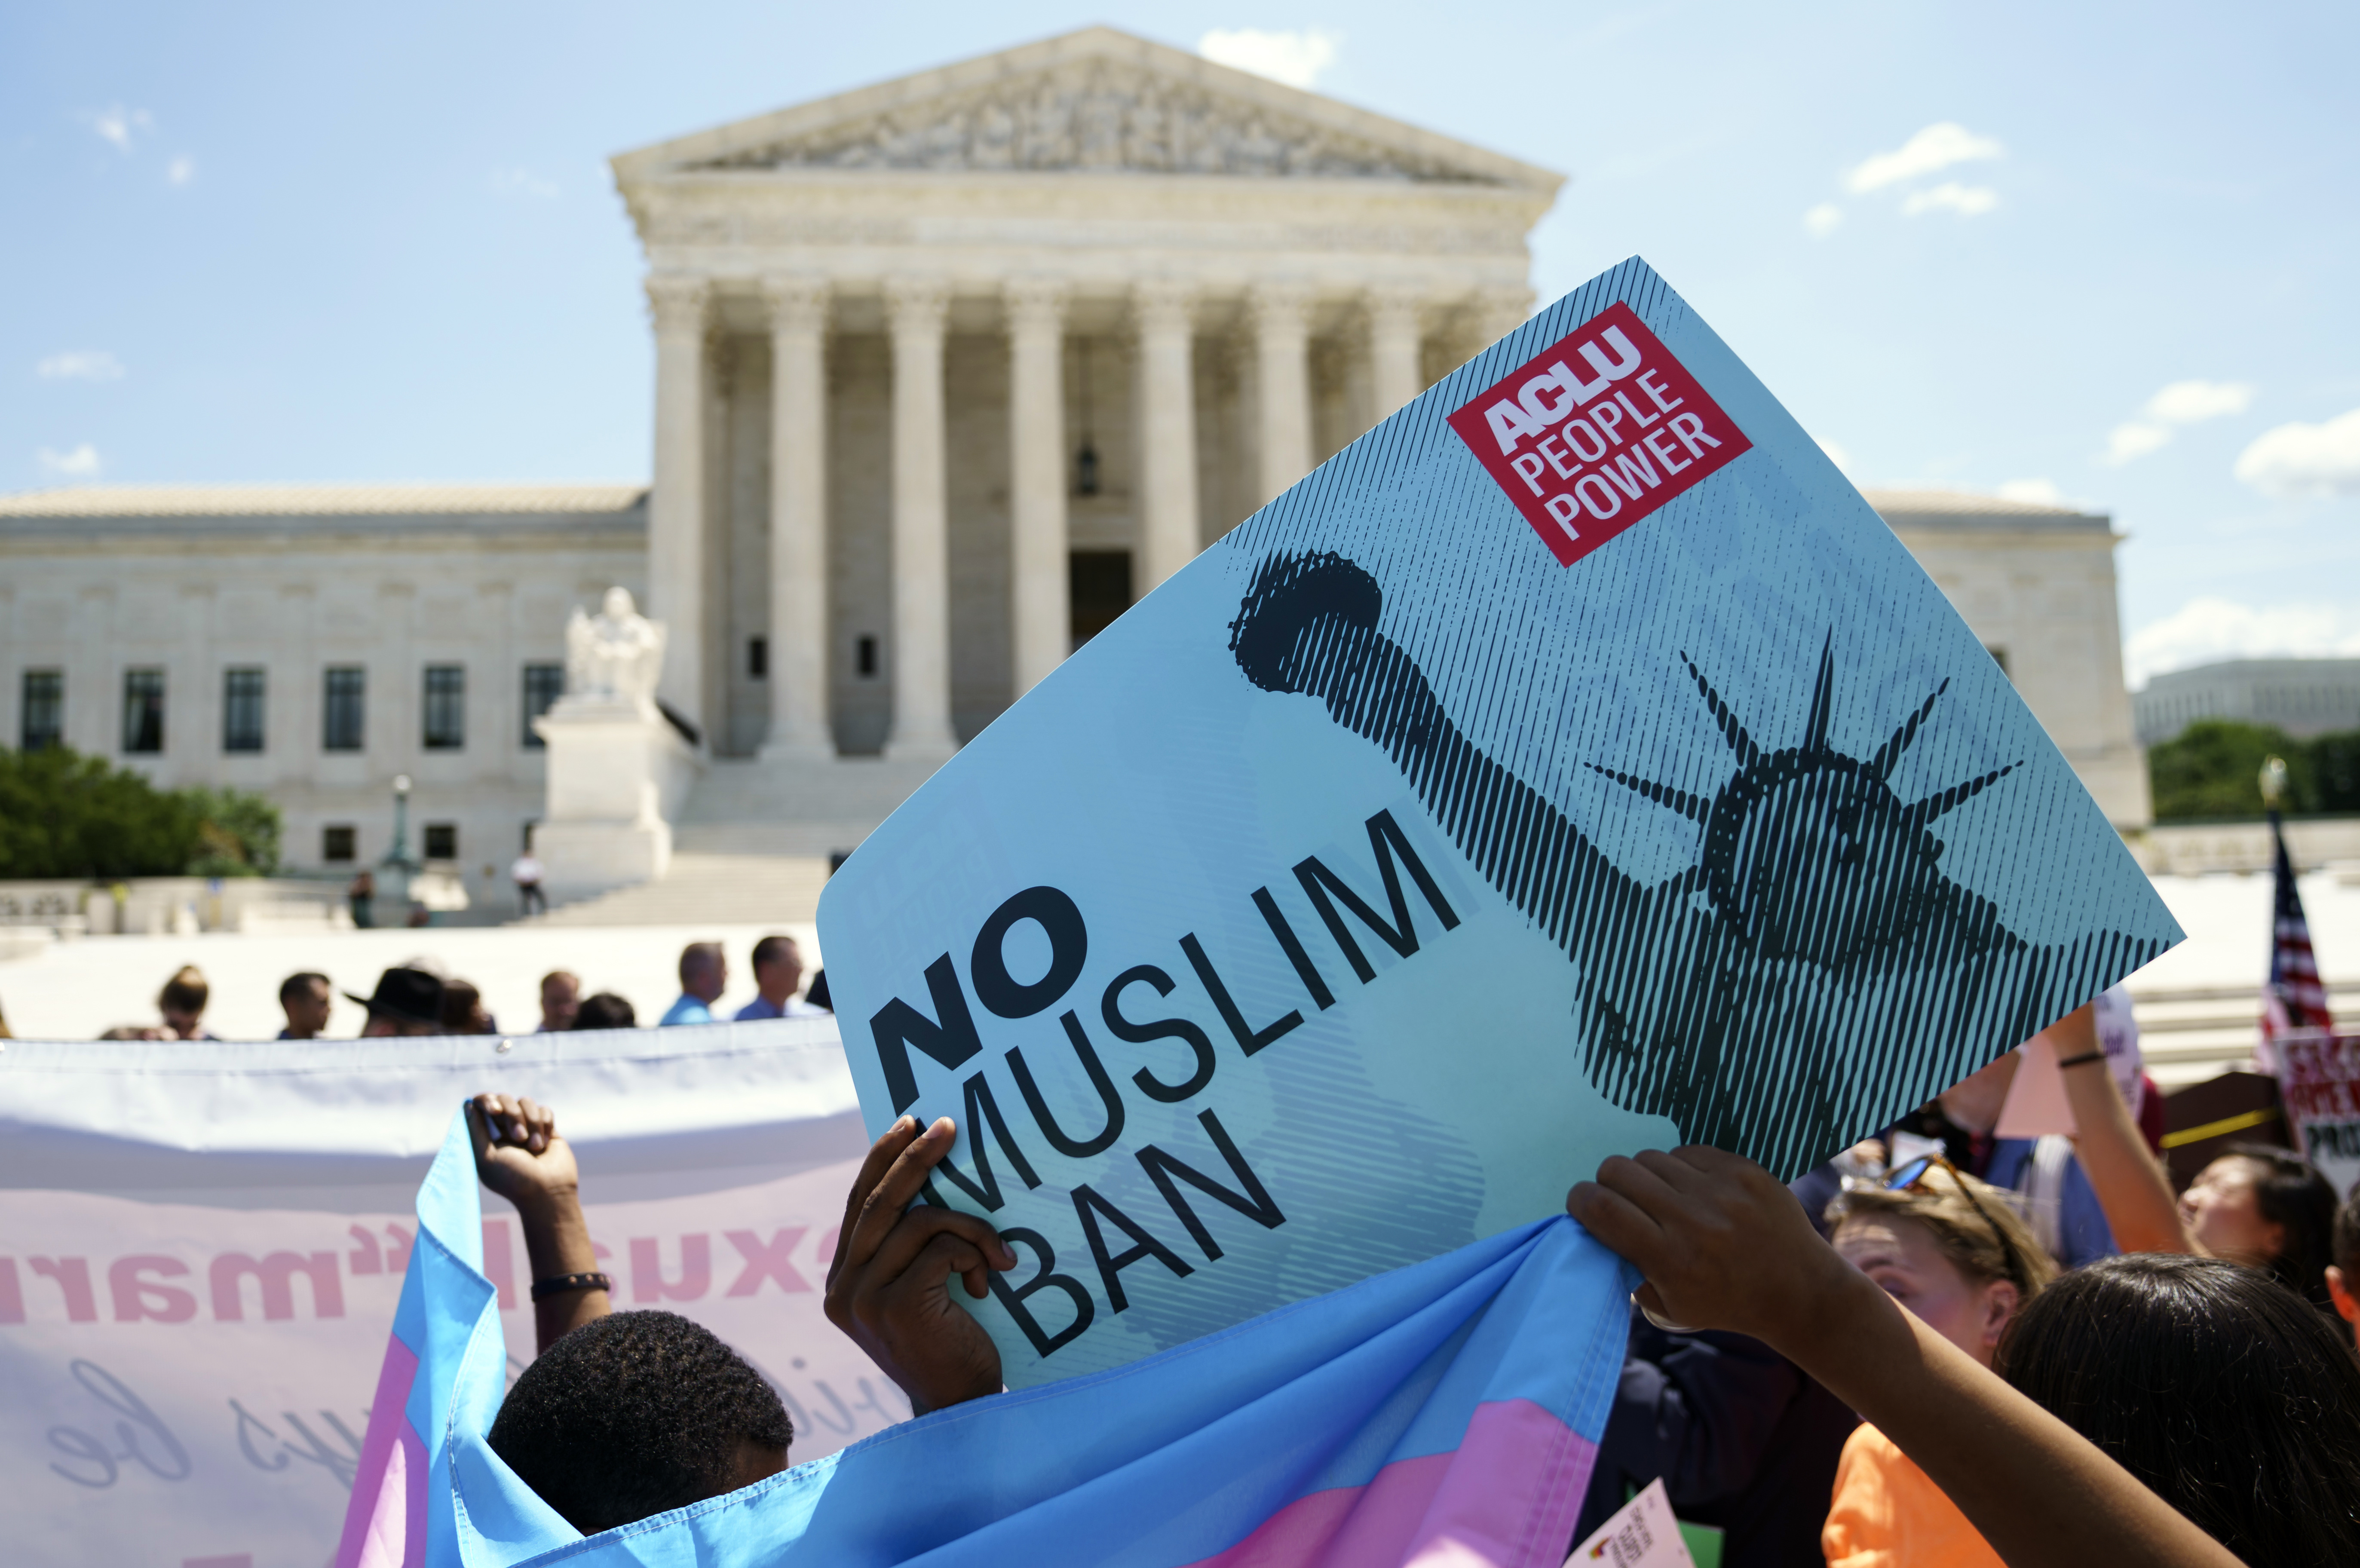 Protester call out against the Supreme Court ruling upholding President Donald Trump's travel ban outside the the Supreme Court in Washington, Tuesday, June 26, 2018. (AP Photo/Carolyn Kaster)